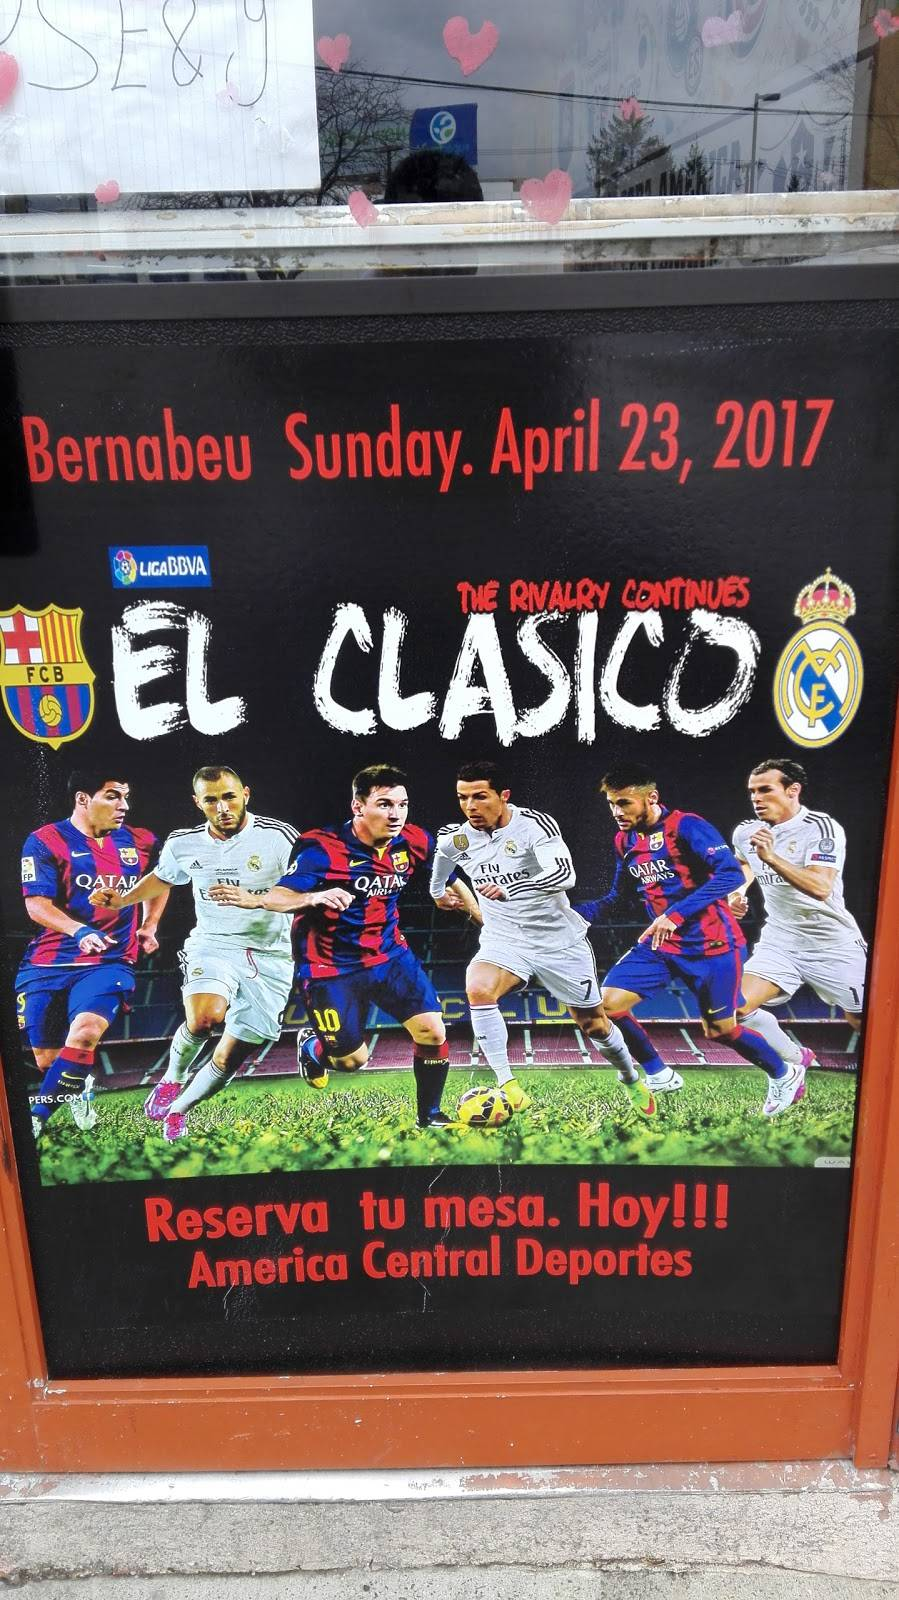 America Central Deportes Restaurant | restaurant | 9264 John F. Kennedy Blvd, North Bergen, NJ 07047, USA | 2017587348 OR +1 201-758-7348